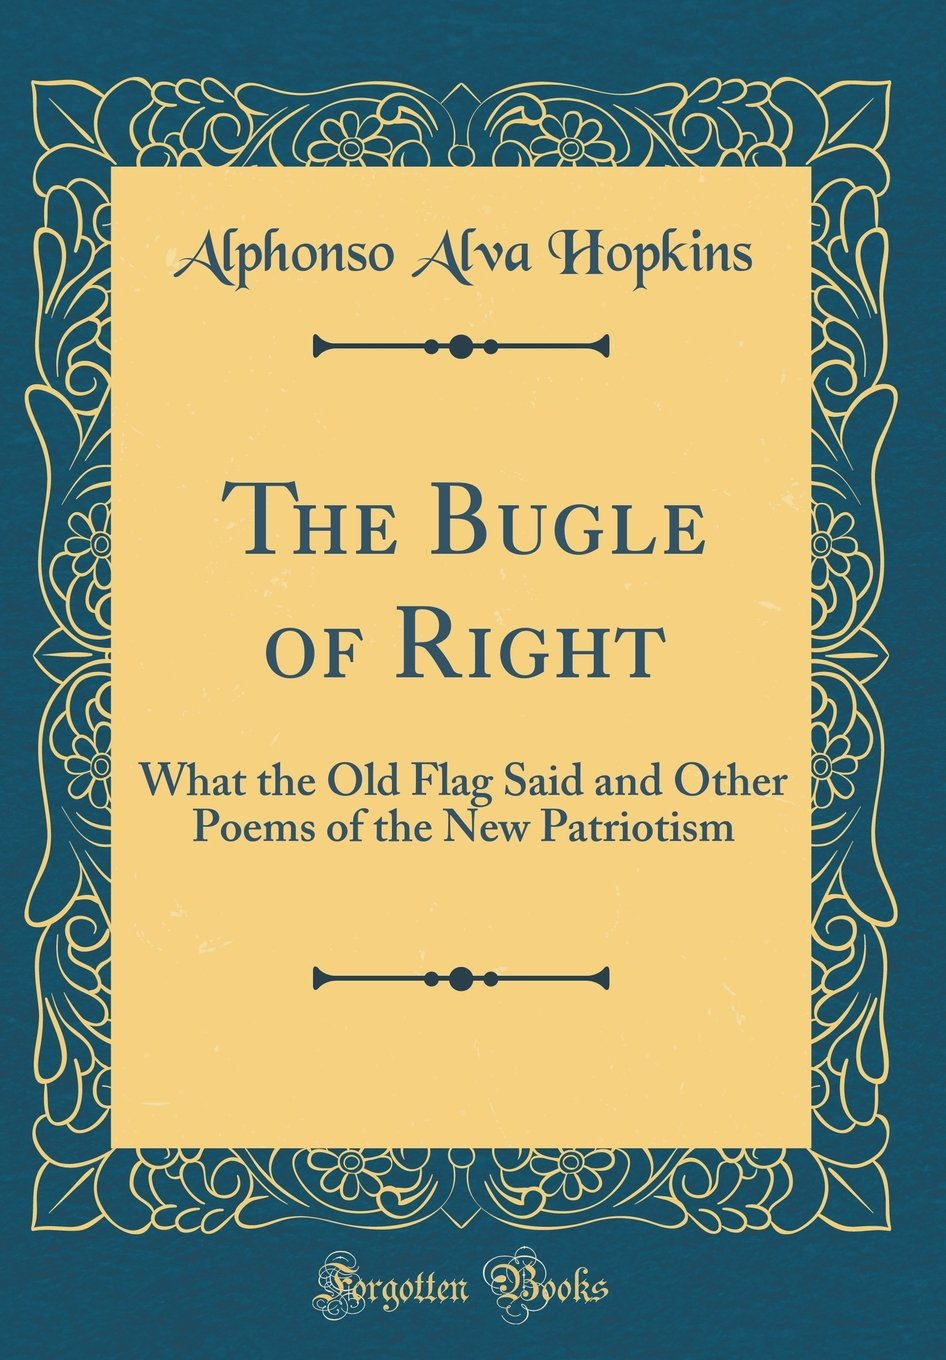 Download The Bugle of Right: What the Old Flag Said and Other Poems of the New Patriotism (Classic Reprint) ebook